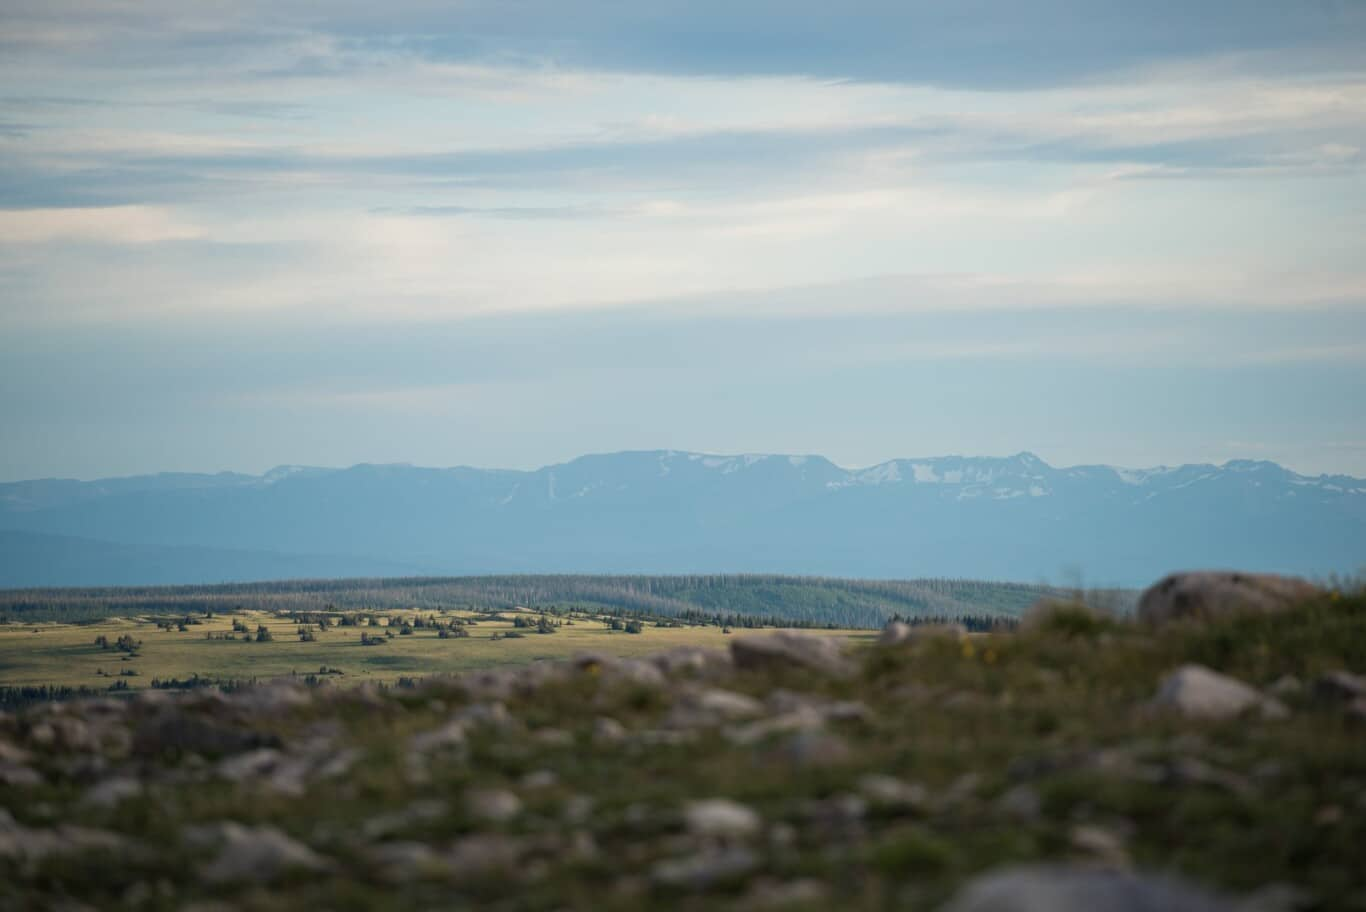 Nearly A Half Million Dollars Allocated to Wyoming's Wildlife